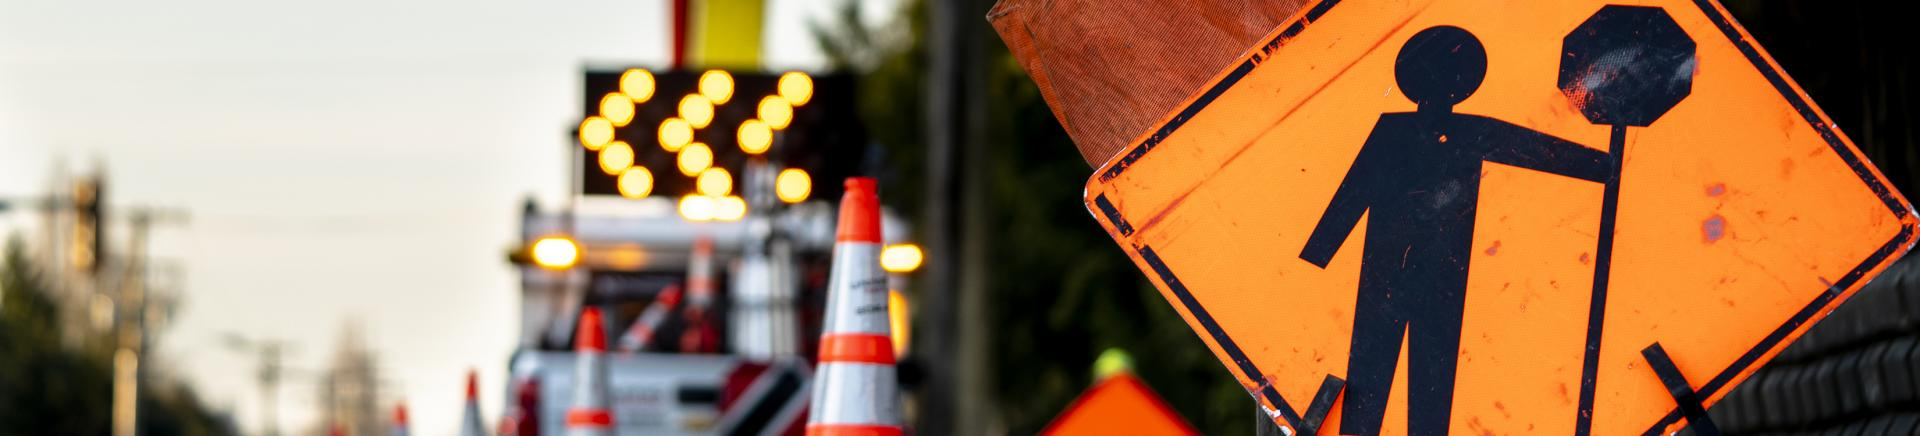 Register Today - Work Zone Traffic Control Qualification Training's